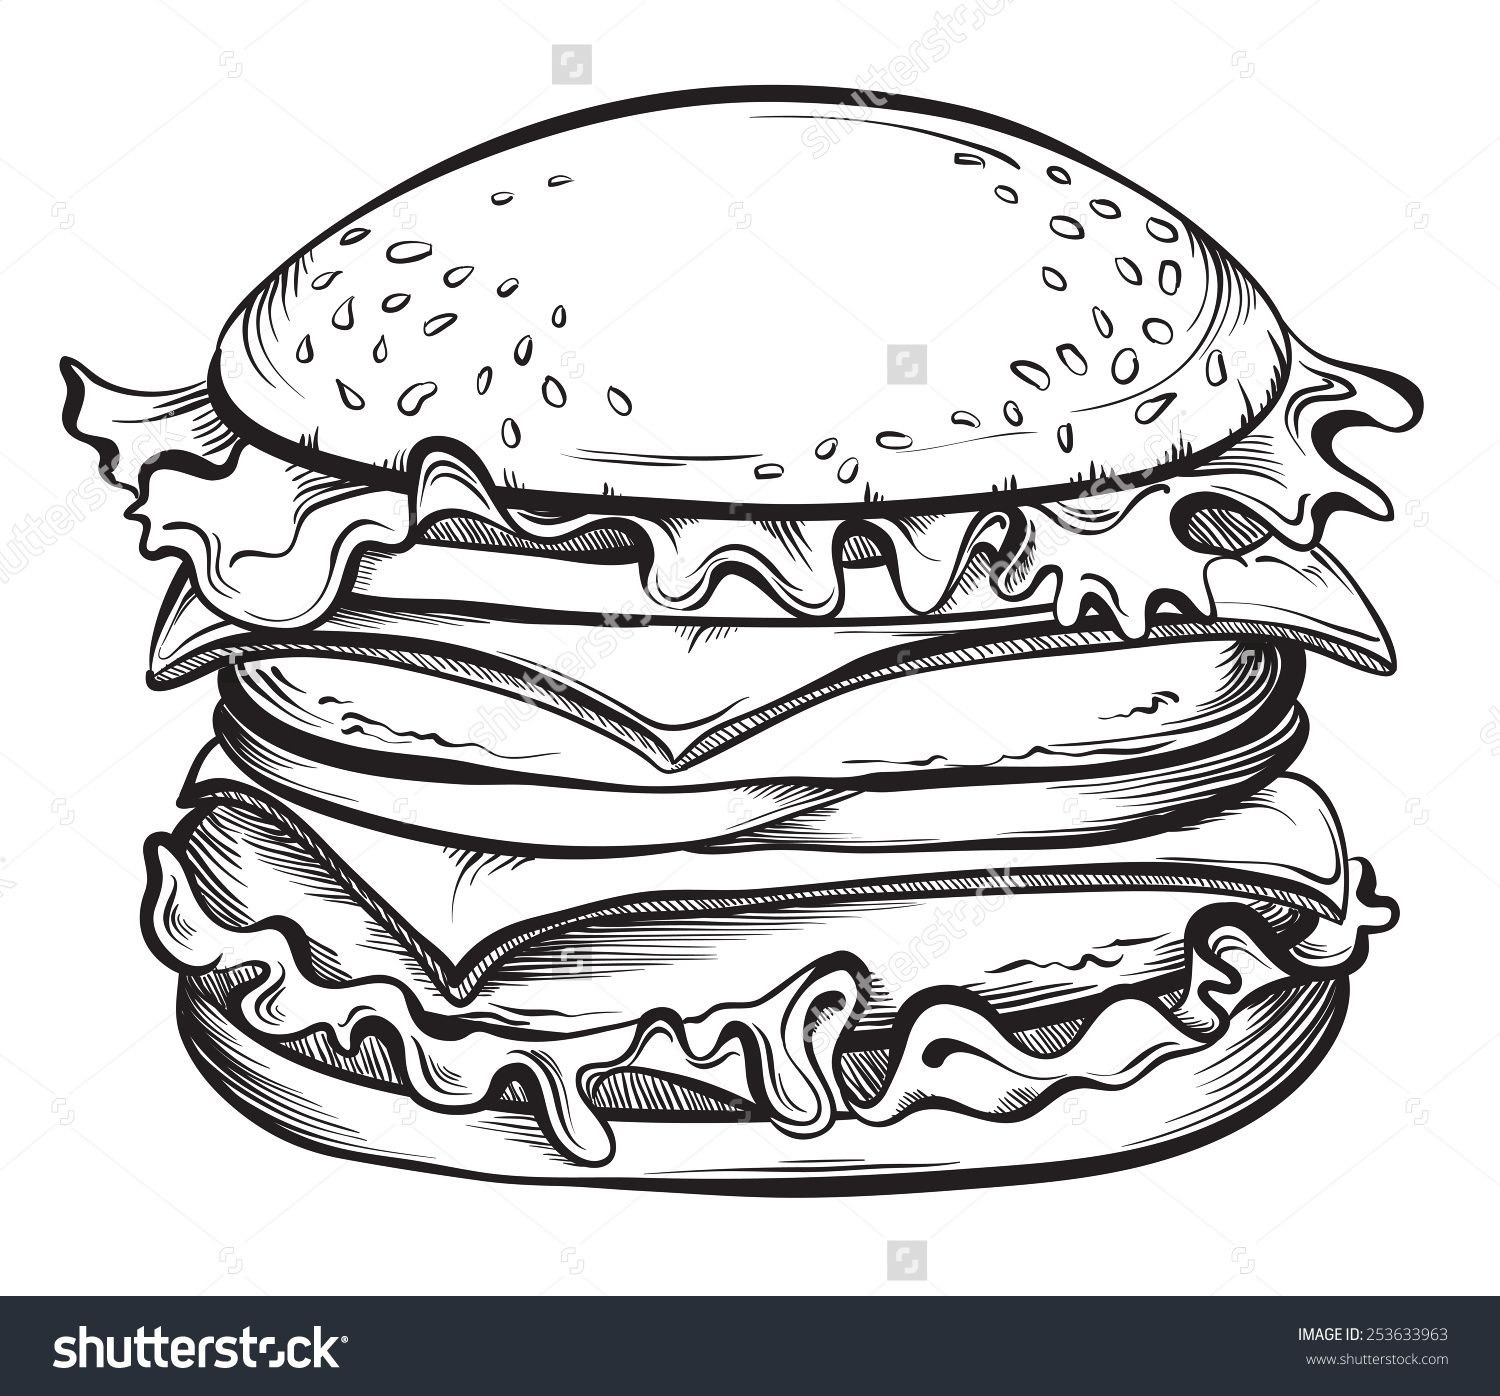 Cheeseburger clipart black and white. Burger illustration google search